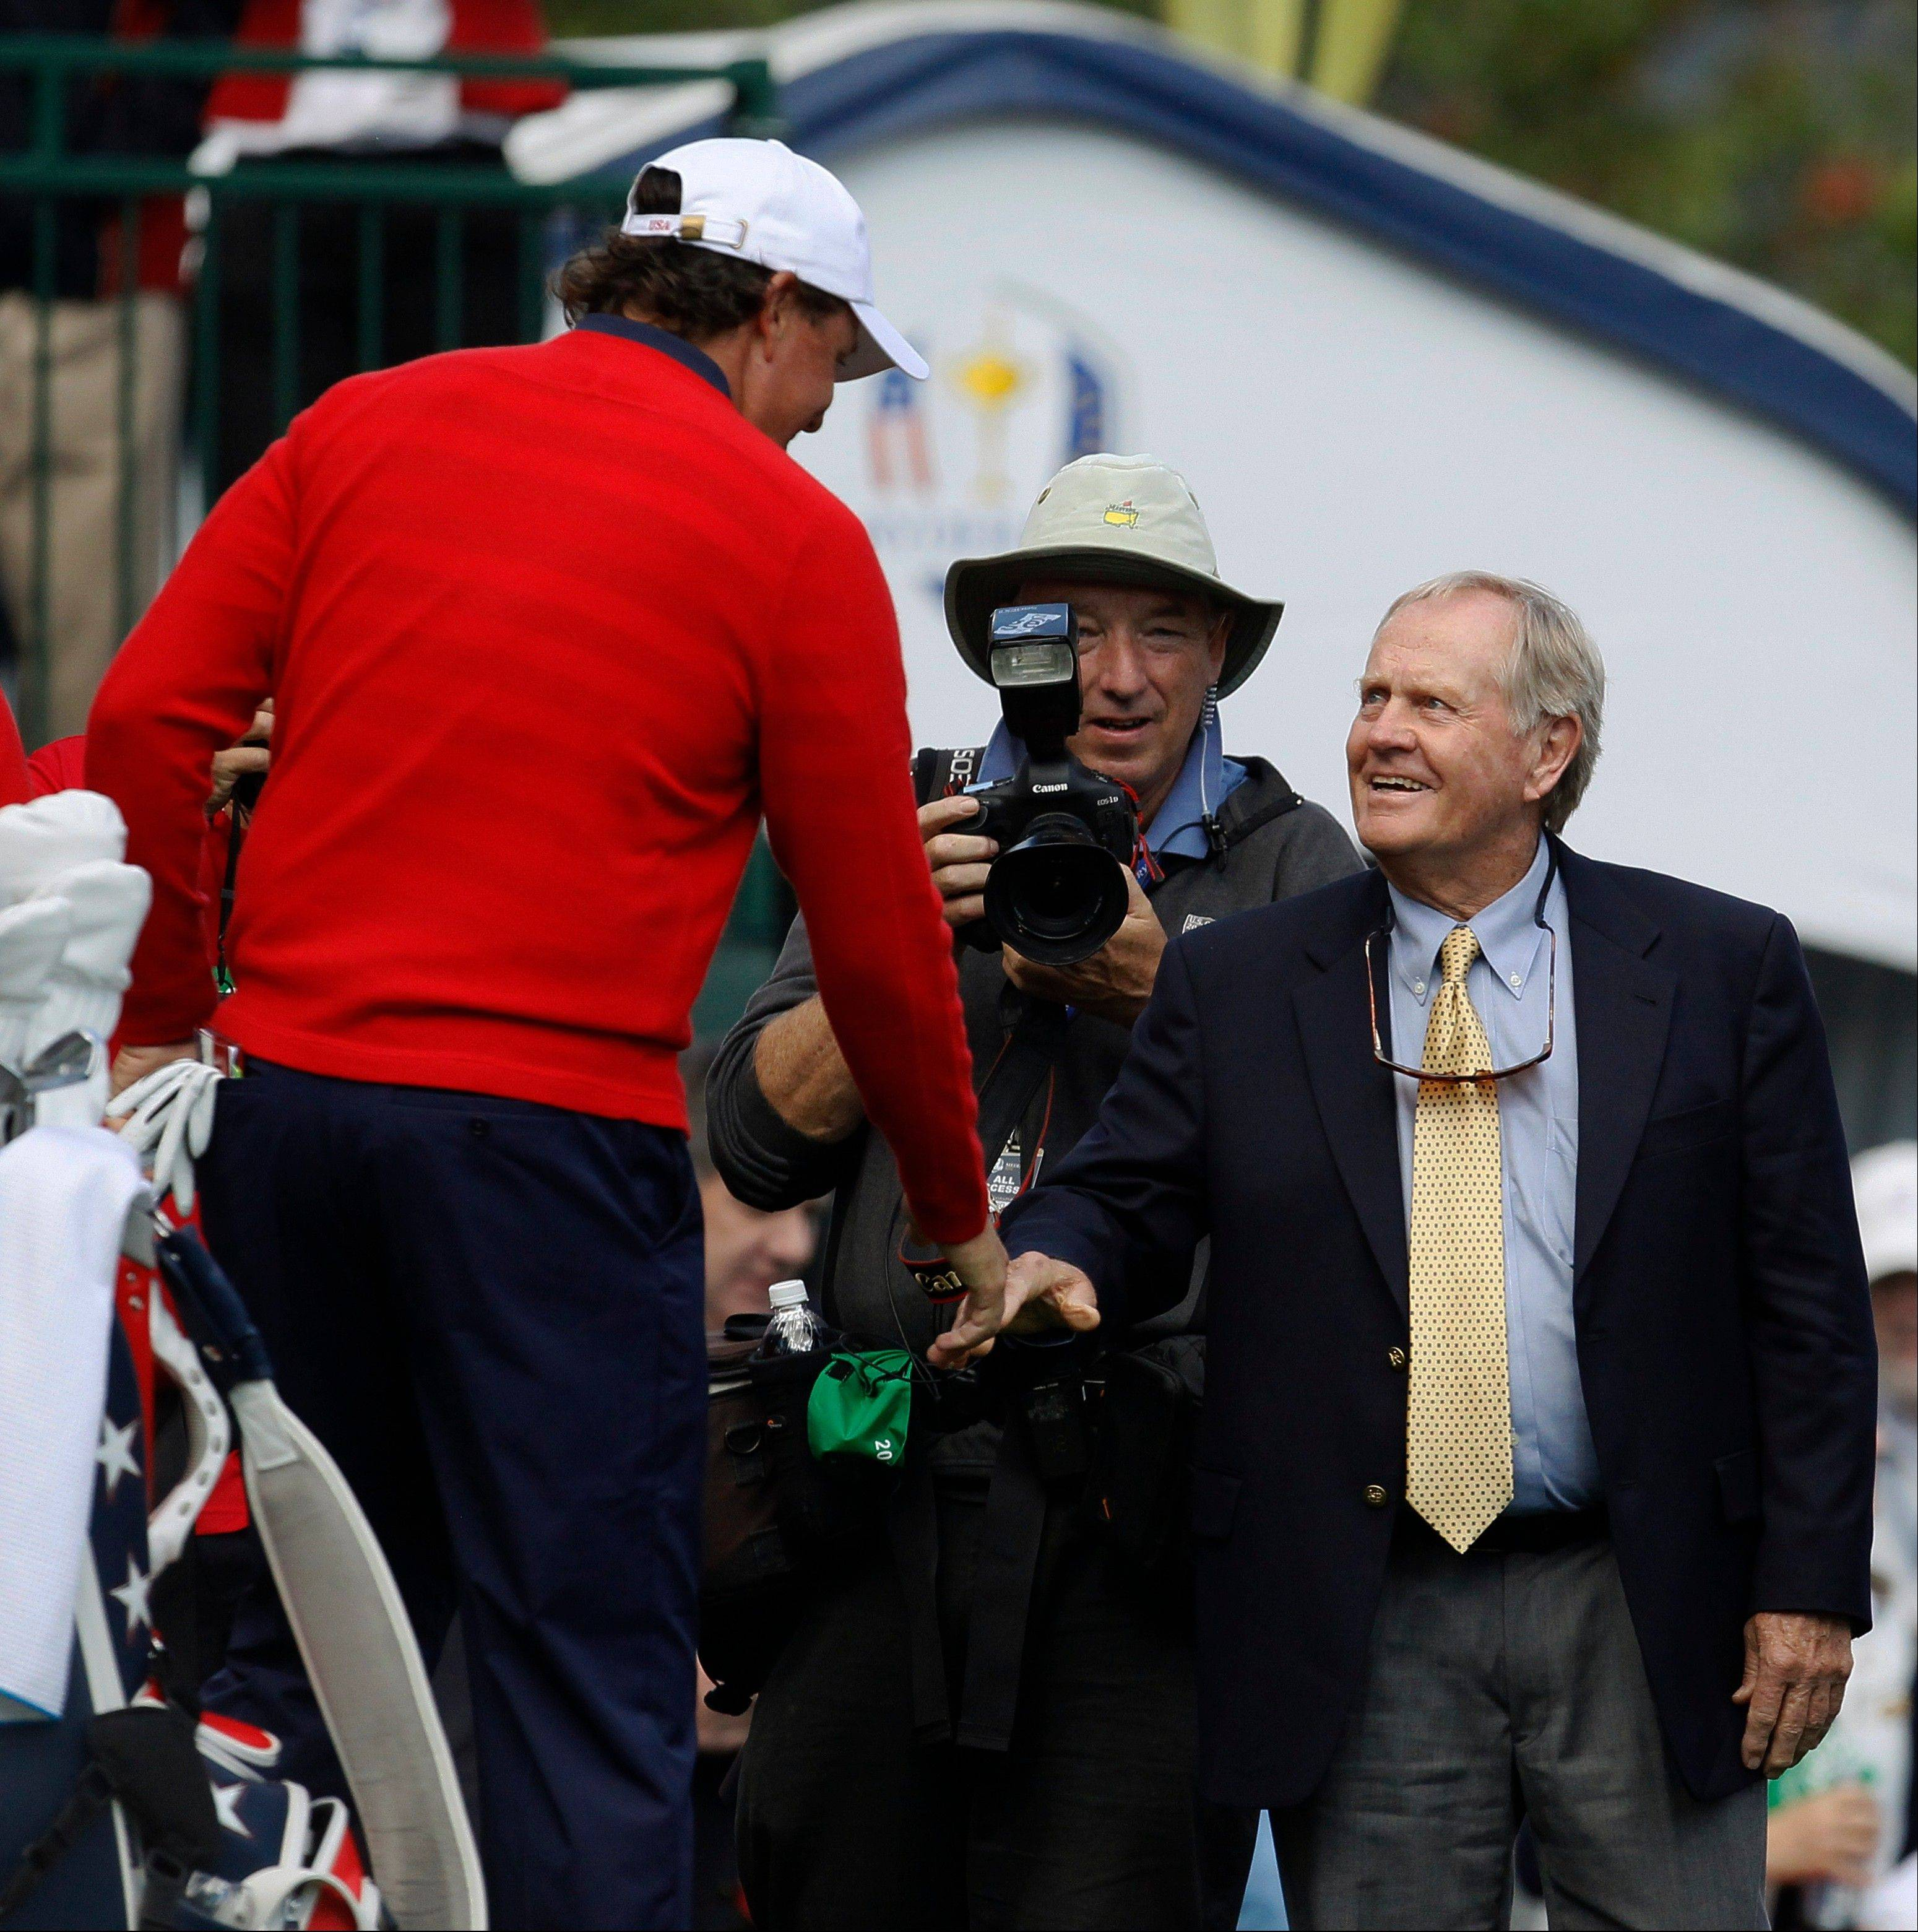 USA's Phil Mickelson, left, shakes hands with Jack Nicklaus on the first hole before a singles match at the Ryder Cup PGA golf tournament Sunday.